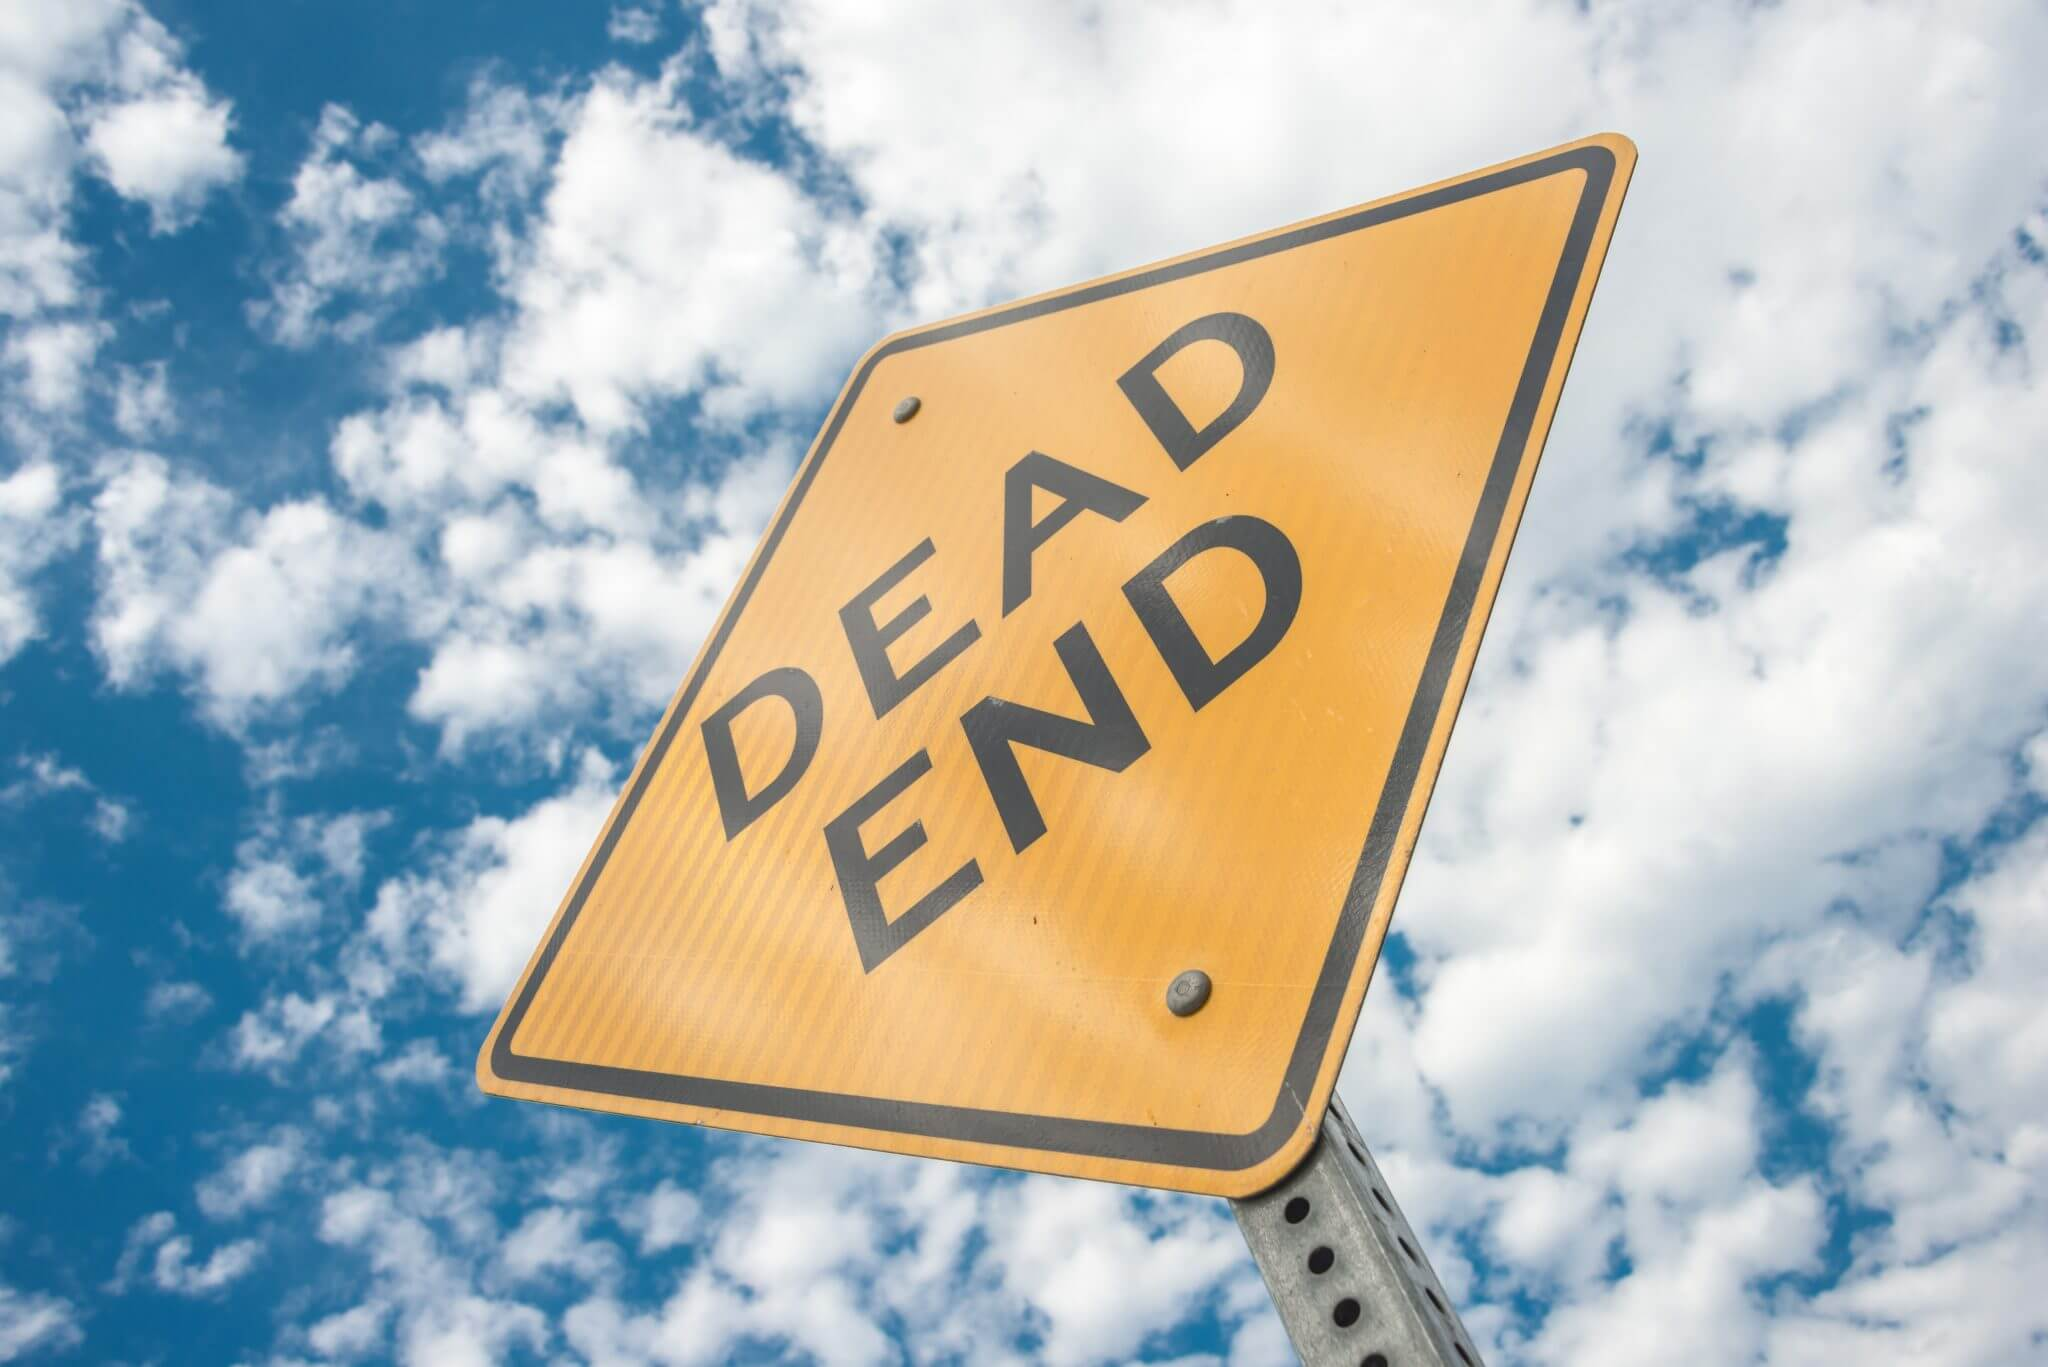 Dead End Street sign perspective from below.